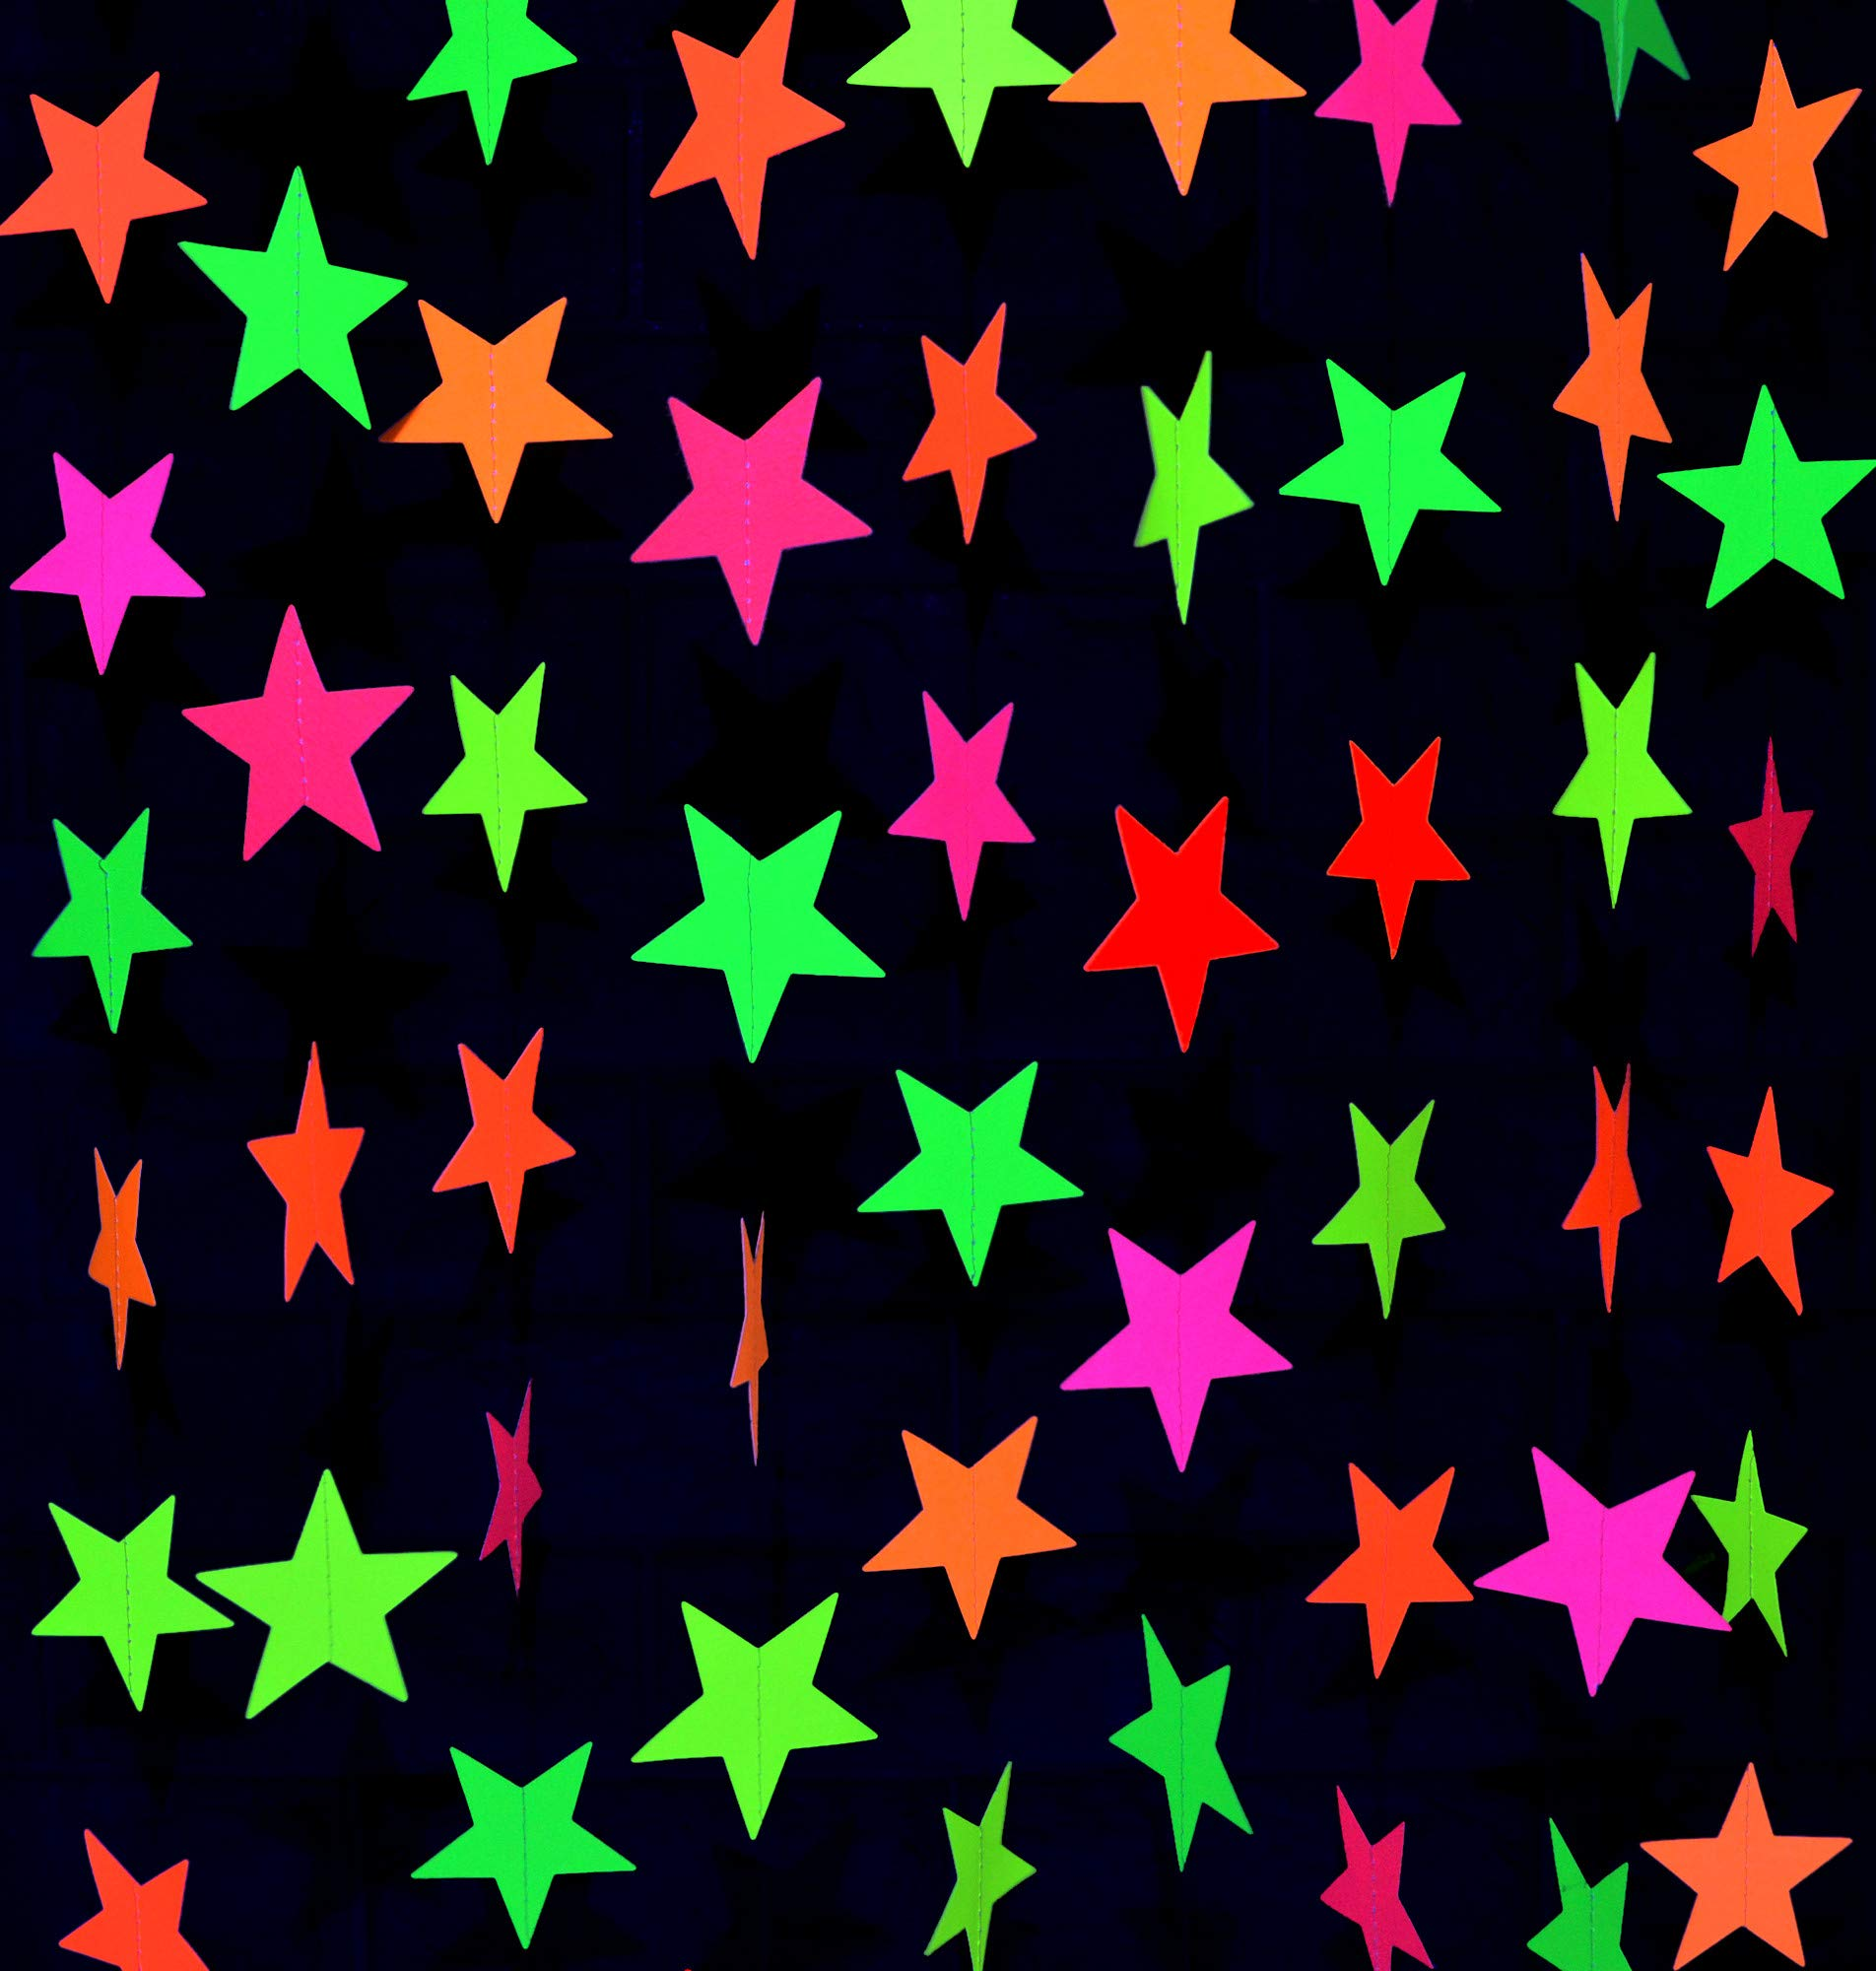 Midnight Glo Black Light Party Supply 78ft Neon Star Garland Hanging Decorations for Birthday Party Wedding Decorations Black Light Reactive UV Glow Party (6 Pack) by Midnight Glo